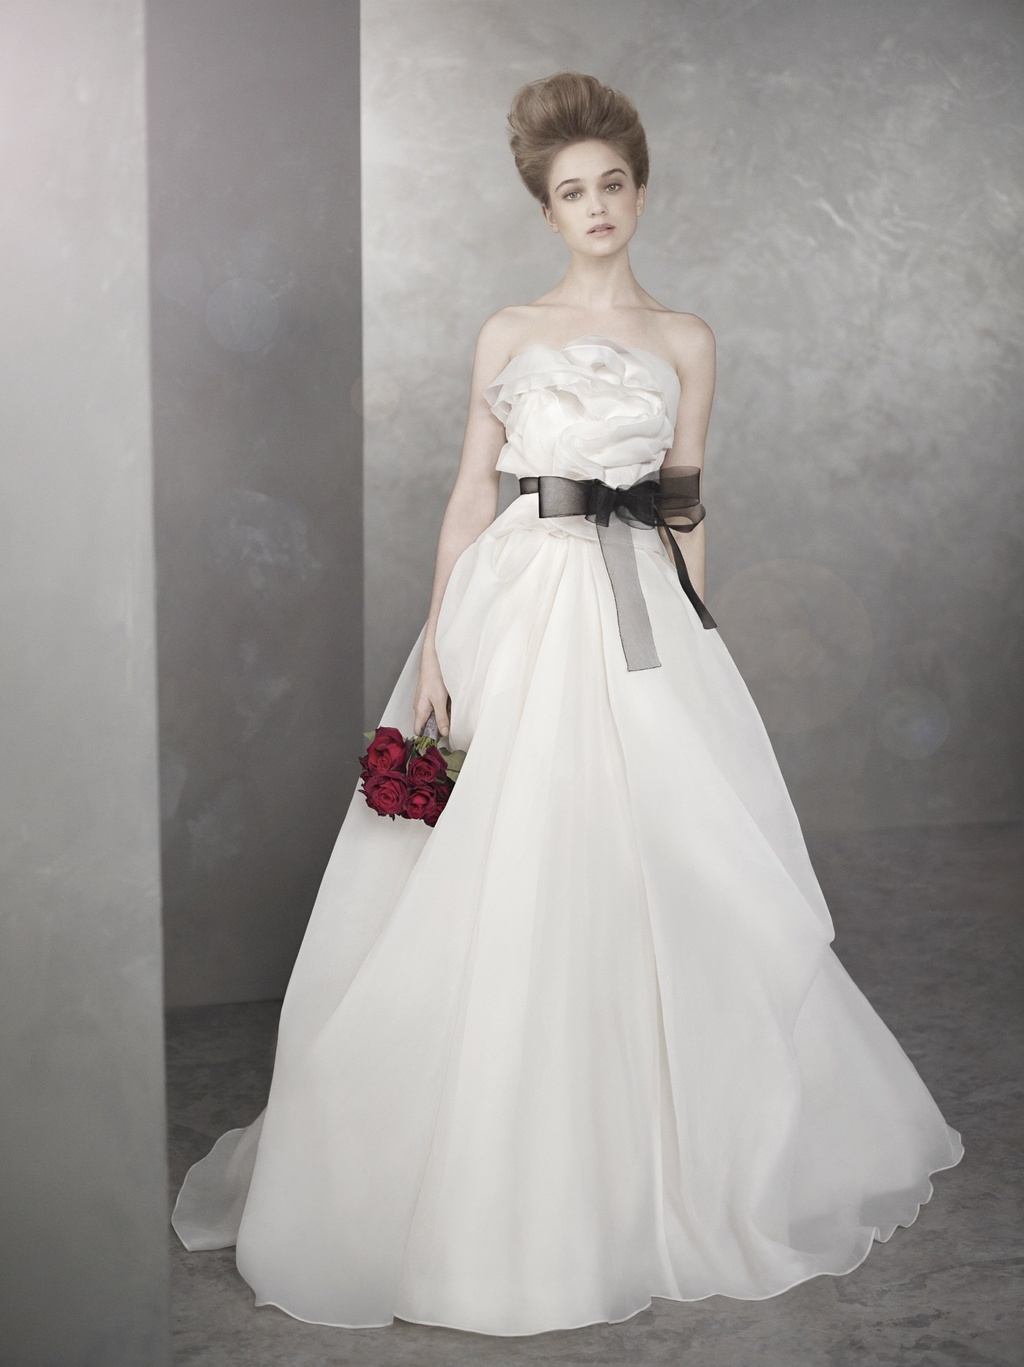 White-by-vera-wang-wedding-dresses-spring-2012-bridal-gown-romantic-a-line-blacl-sash.full